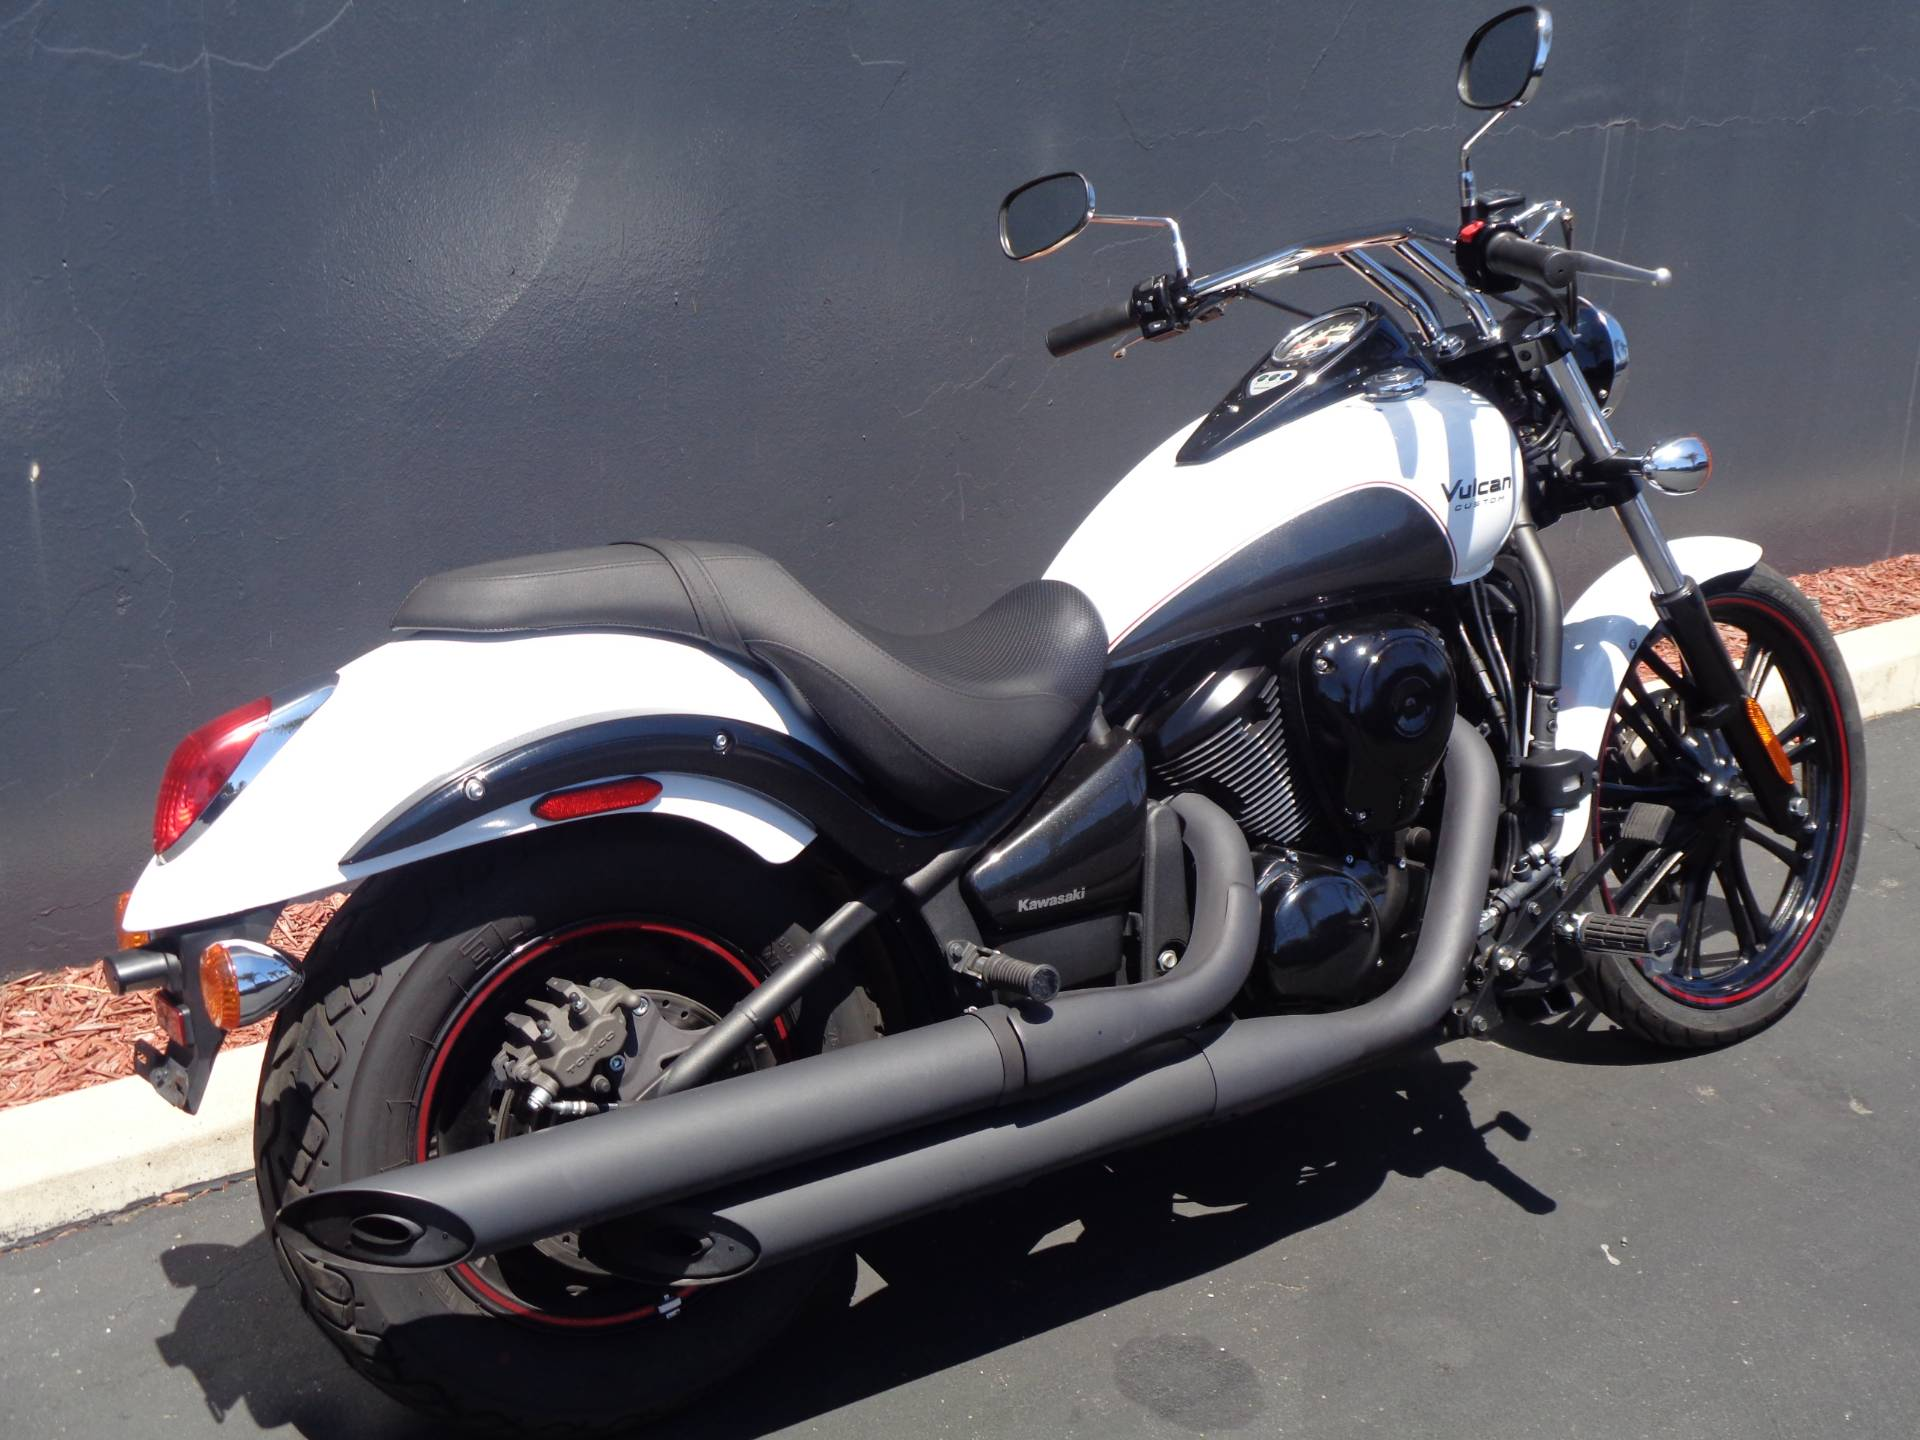 2016 Kawasaki Vulcan 900 Custom in Chula Vista, California - Photo 3